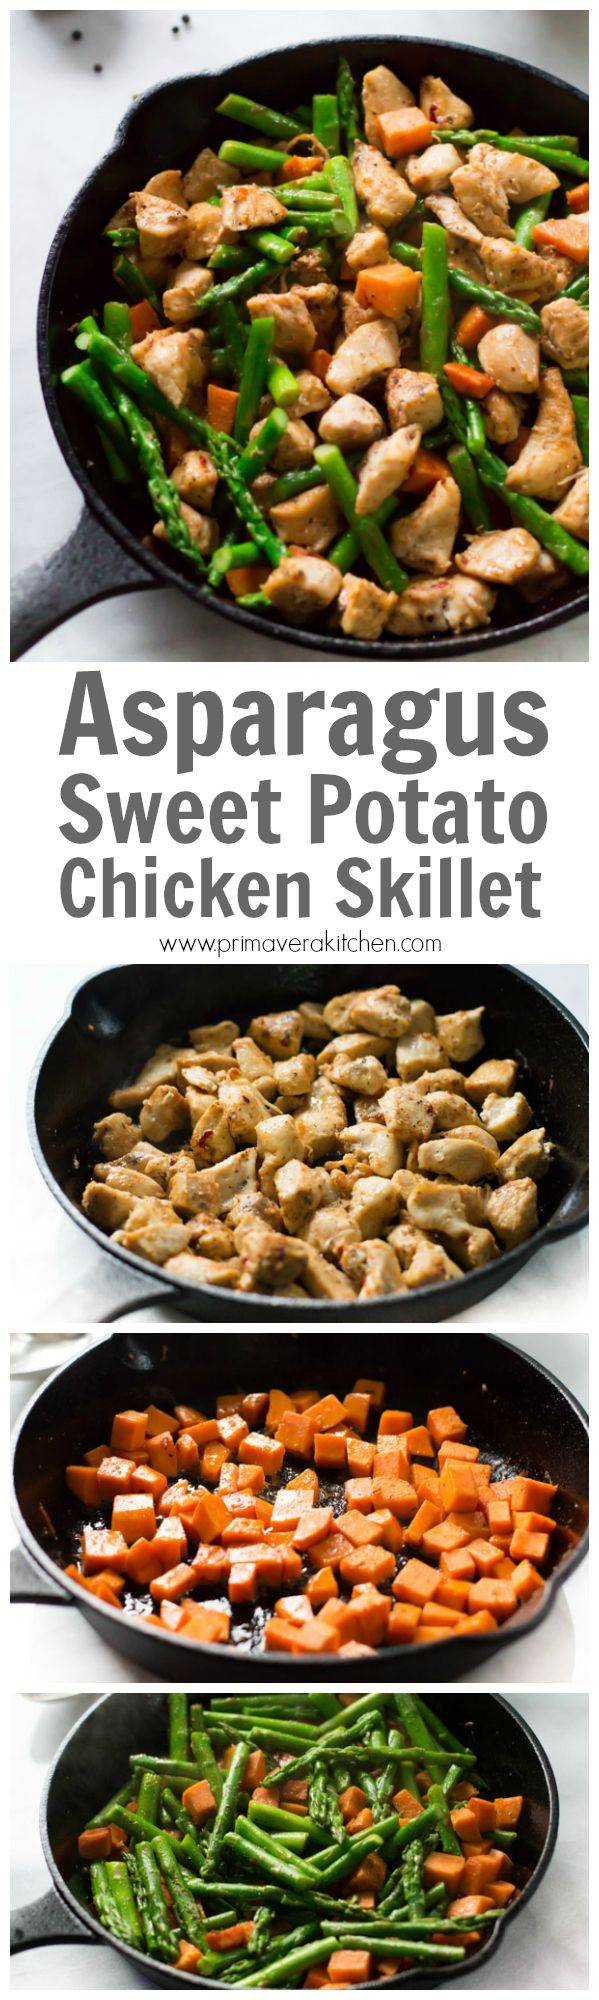 This Asparagus Sweet Potato Chicken Skillet recipe is a delicious healthy and…